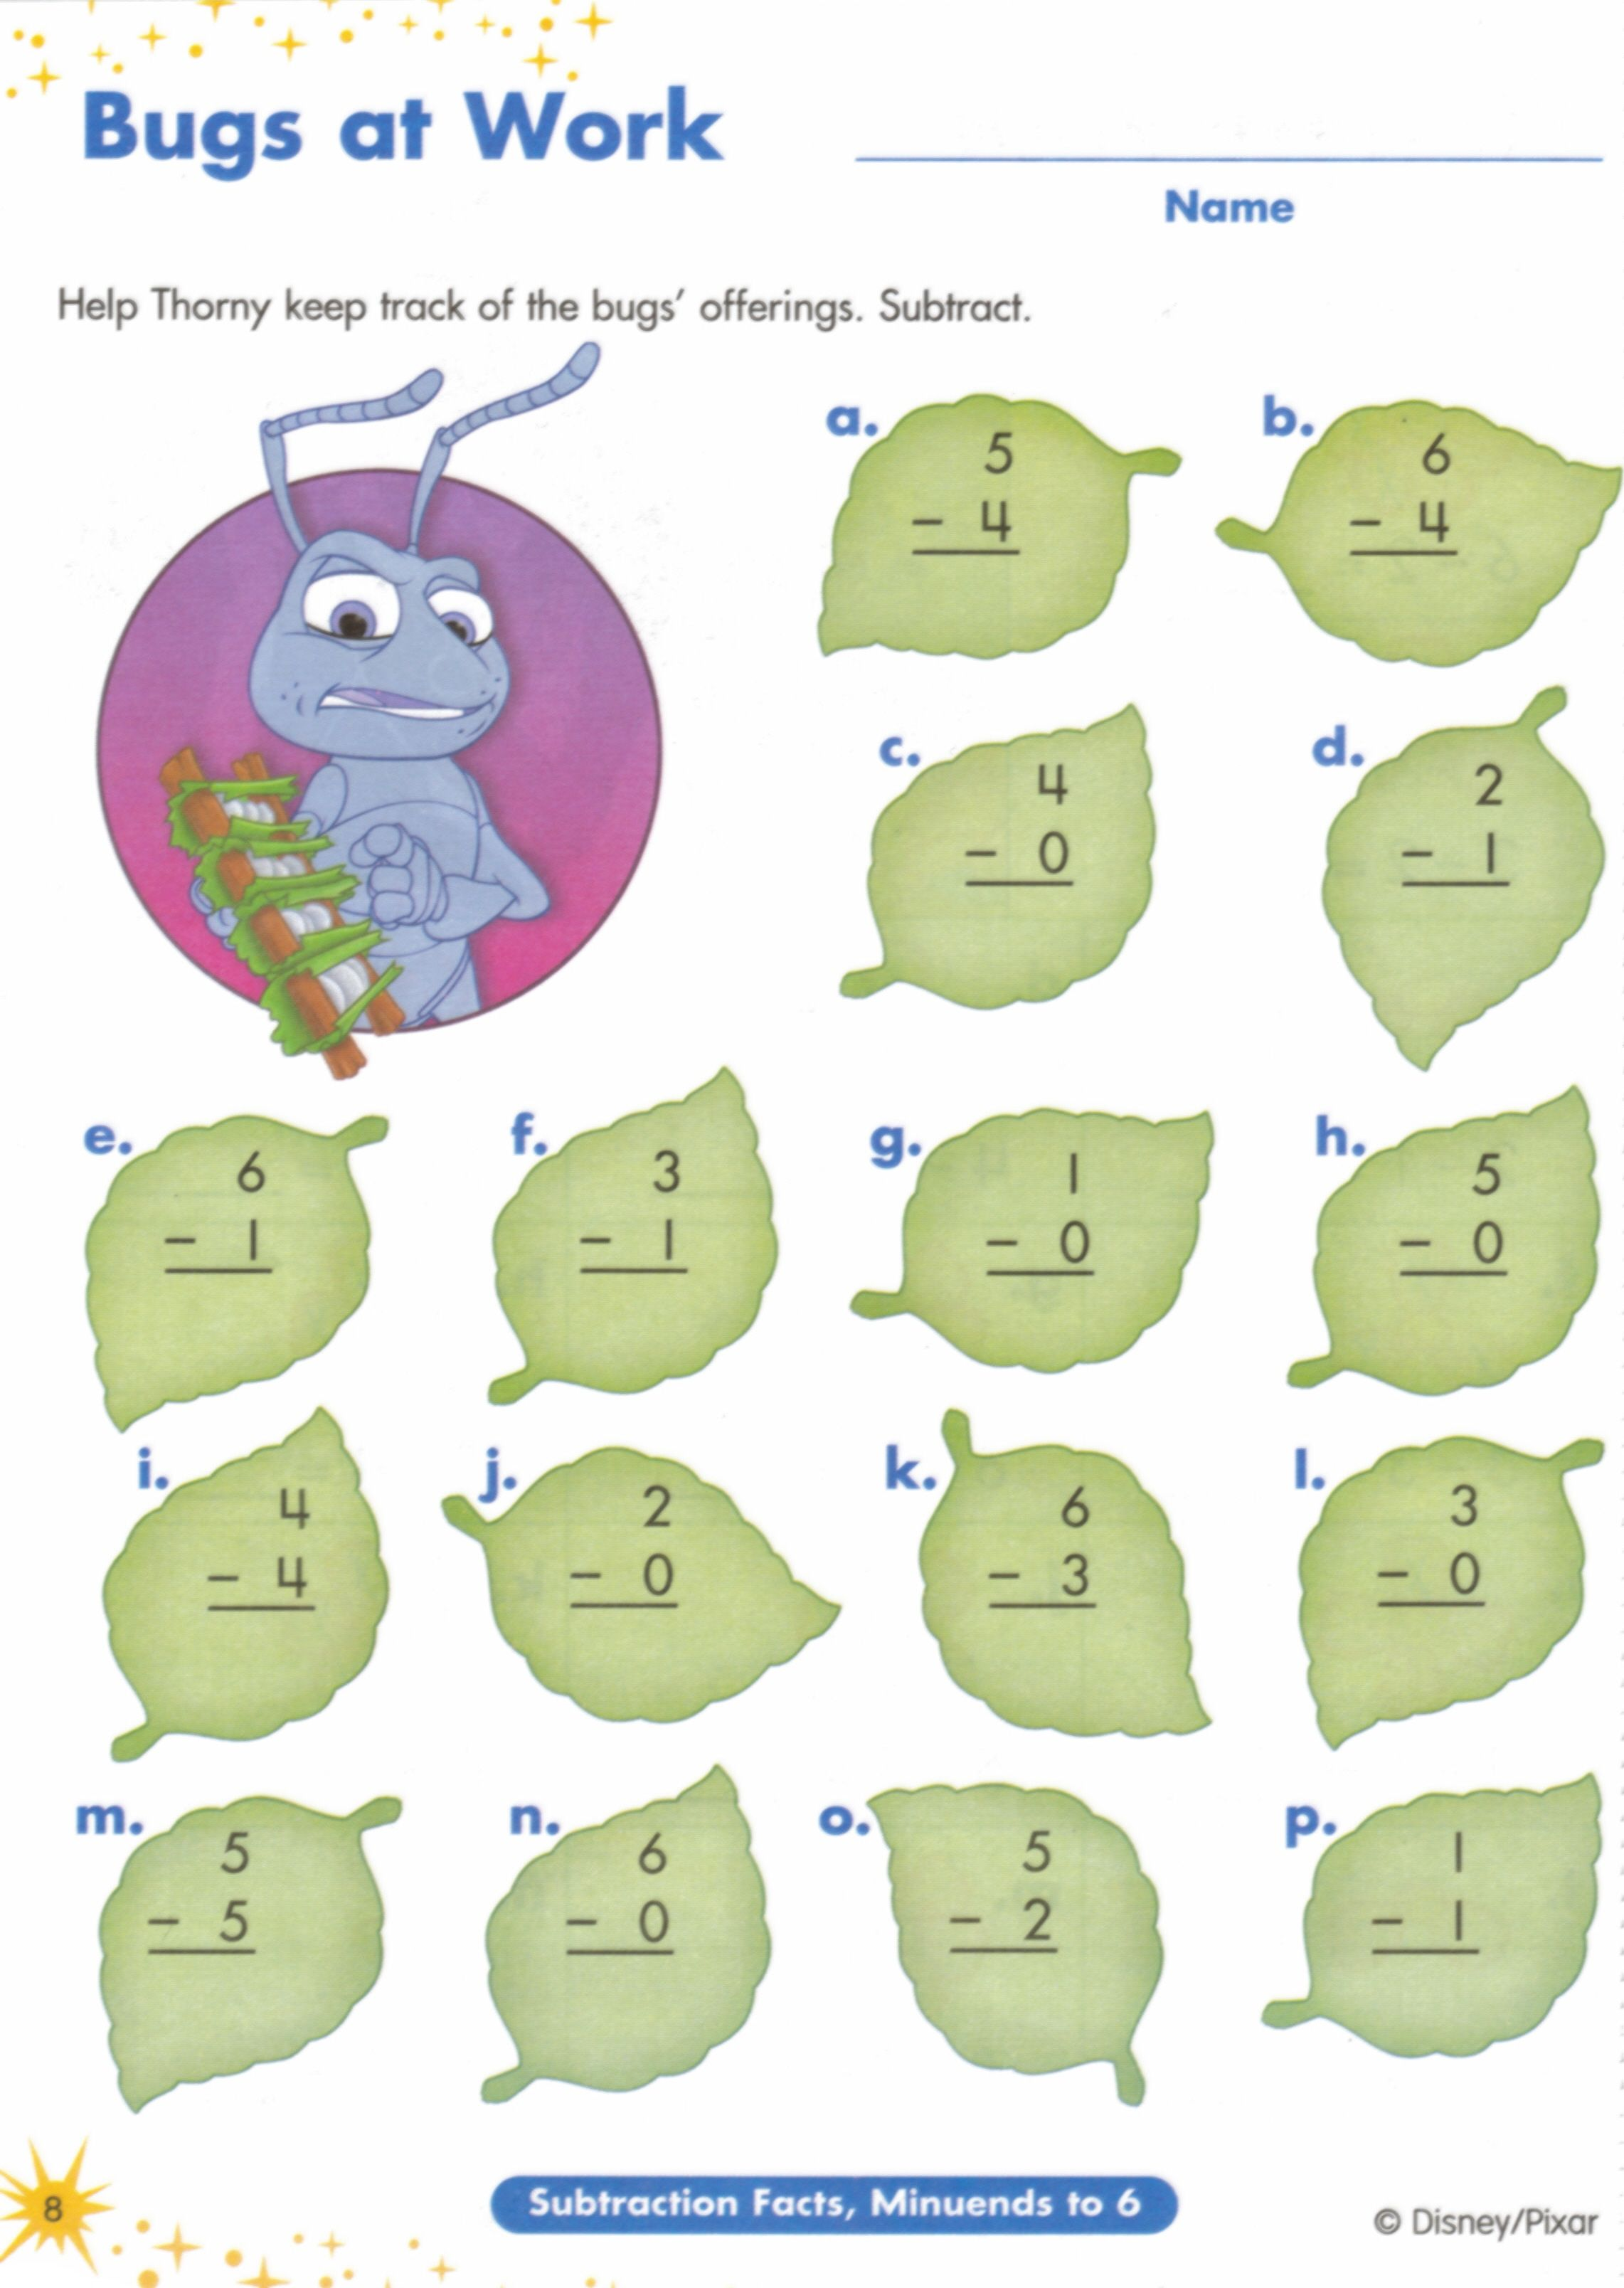 Proatmealus  Unusual  Images About Worksheets On Pinterest  Fun Facts For Kids  With Outstanding  Images About Worksheets On Pinterest  Fun Facts For Kids Earth Day Worksheets And Jungles With Breathtaking Practice Worksheets For English Grammar Also Sukkot Worksheet In Addition Speed Worksheet Answers And Percentage Problems Worksheet As Well As Tax Tip Discount Worksheet Additionally Rd Grade Word Problems Worksheets From Pinterestcom With Proatmealus  Outstanding  Images About Worksheets On Pinterest  Fun Facts For Kids  With Breathtaking  Images About Worksheets On Pinterest  Fun Facts For Kids Earth Day Worksheets And Jungles And Unusual Practice Worksheets For English Grammar Also Sukkot Worksheet In Addition Speed Worksheet Answers From Pinterestcom